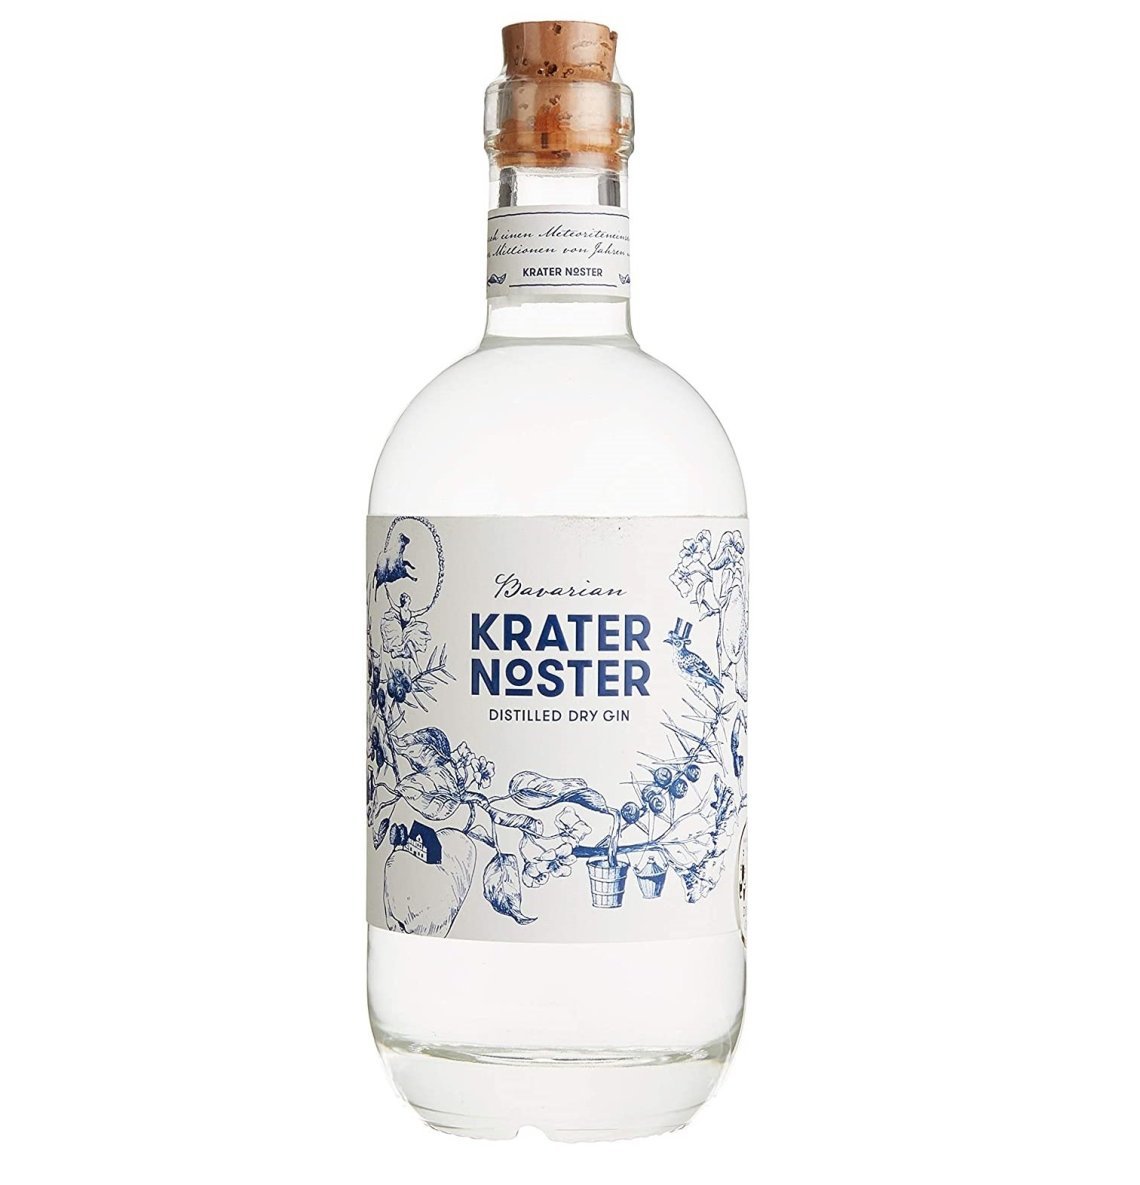 Krater Noster Gin